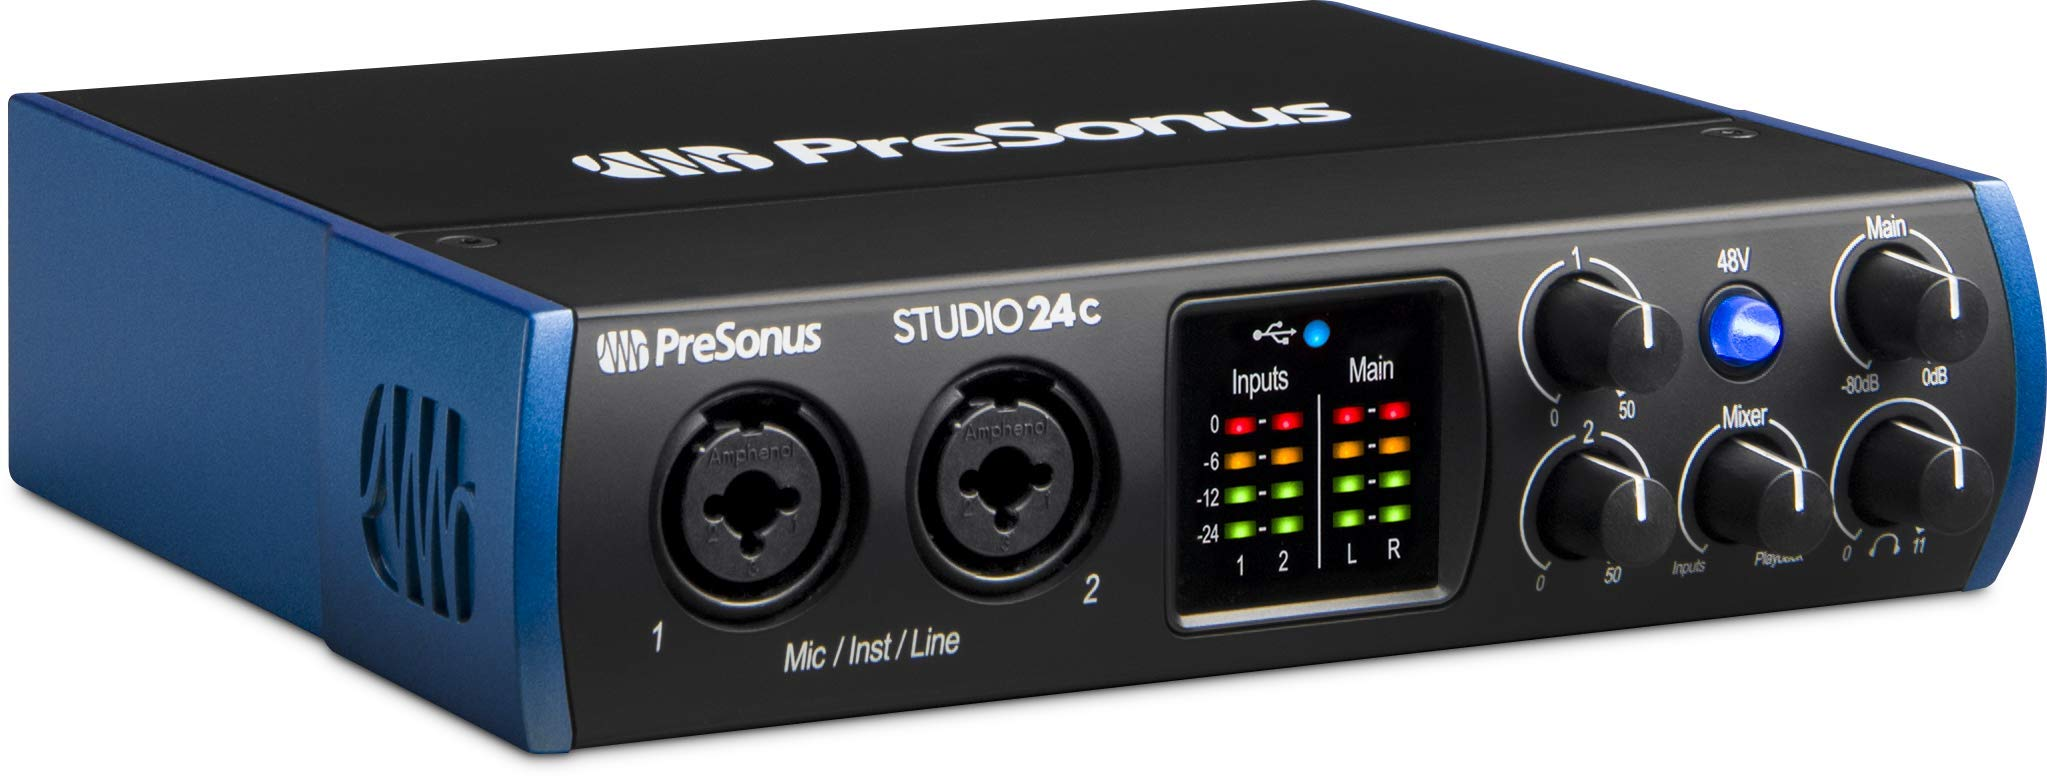 PreSonus Studio 24c 2x2, 192 kHz, USB-C Audio Interface